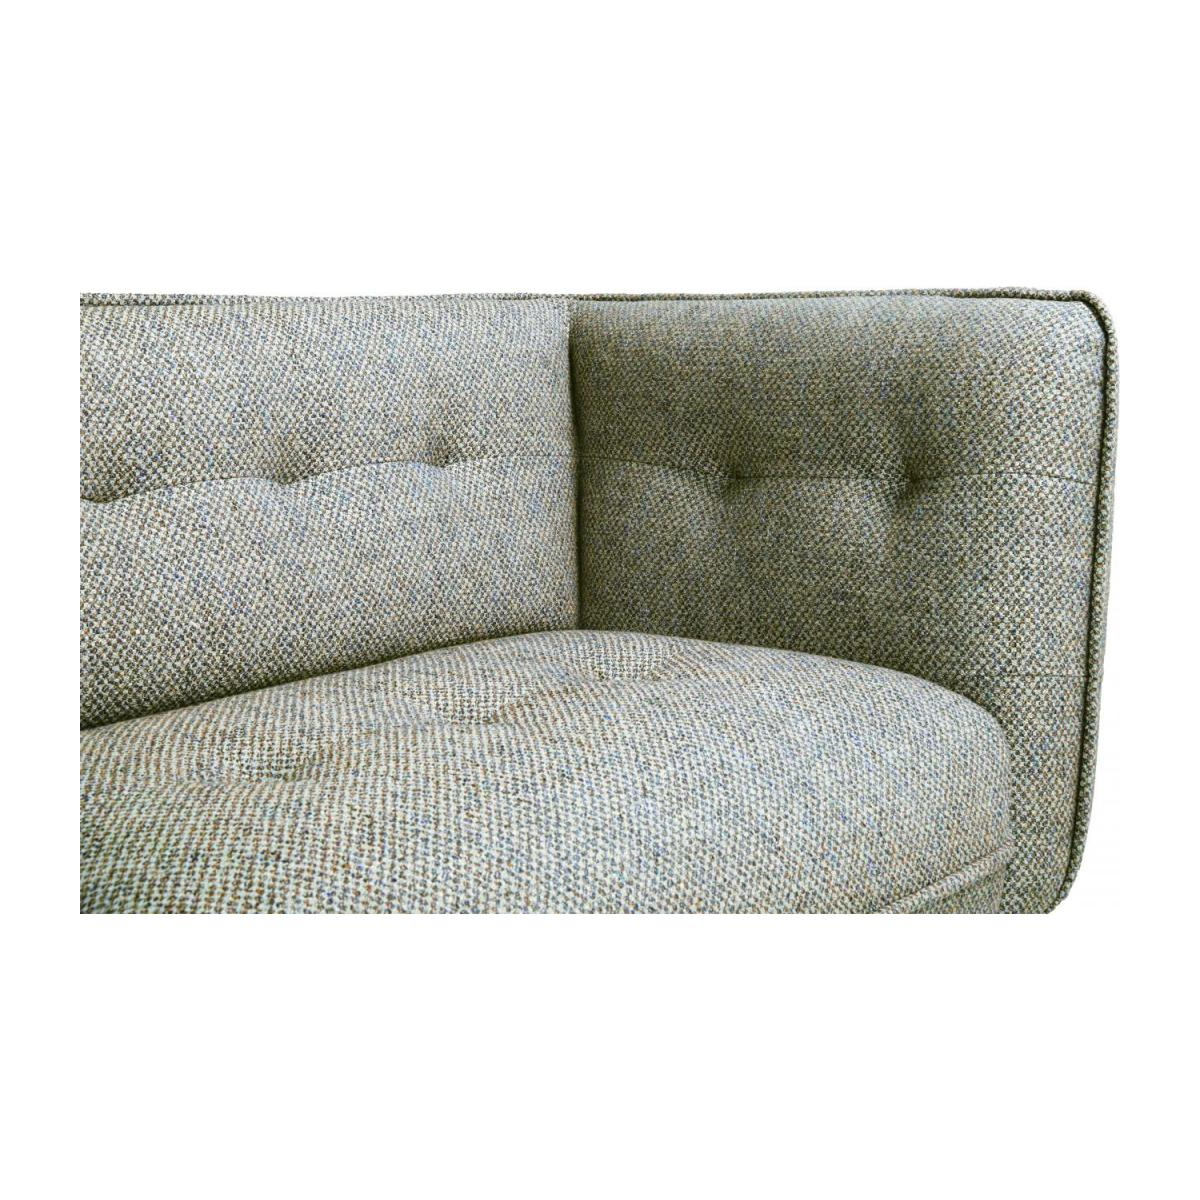 3 seater sofa in Bellagio fabric, organic green and oak legs n°6